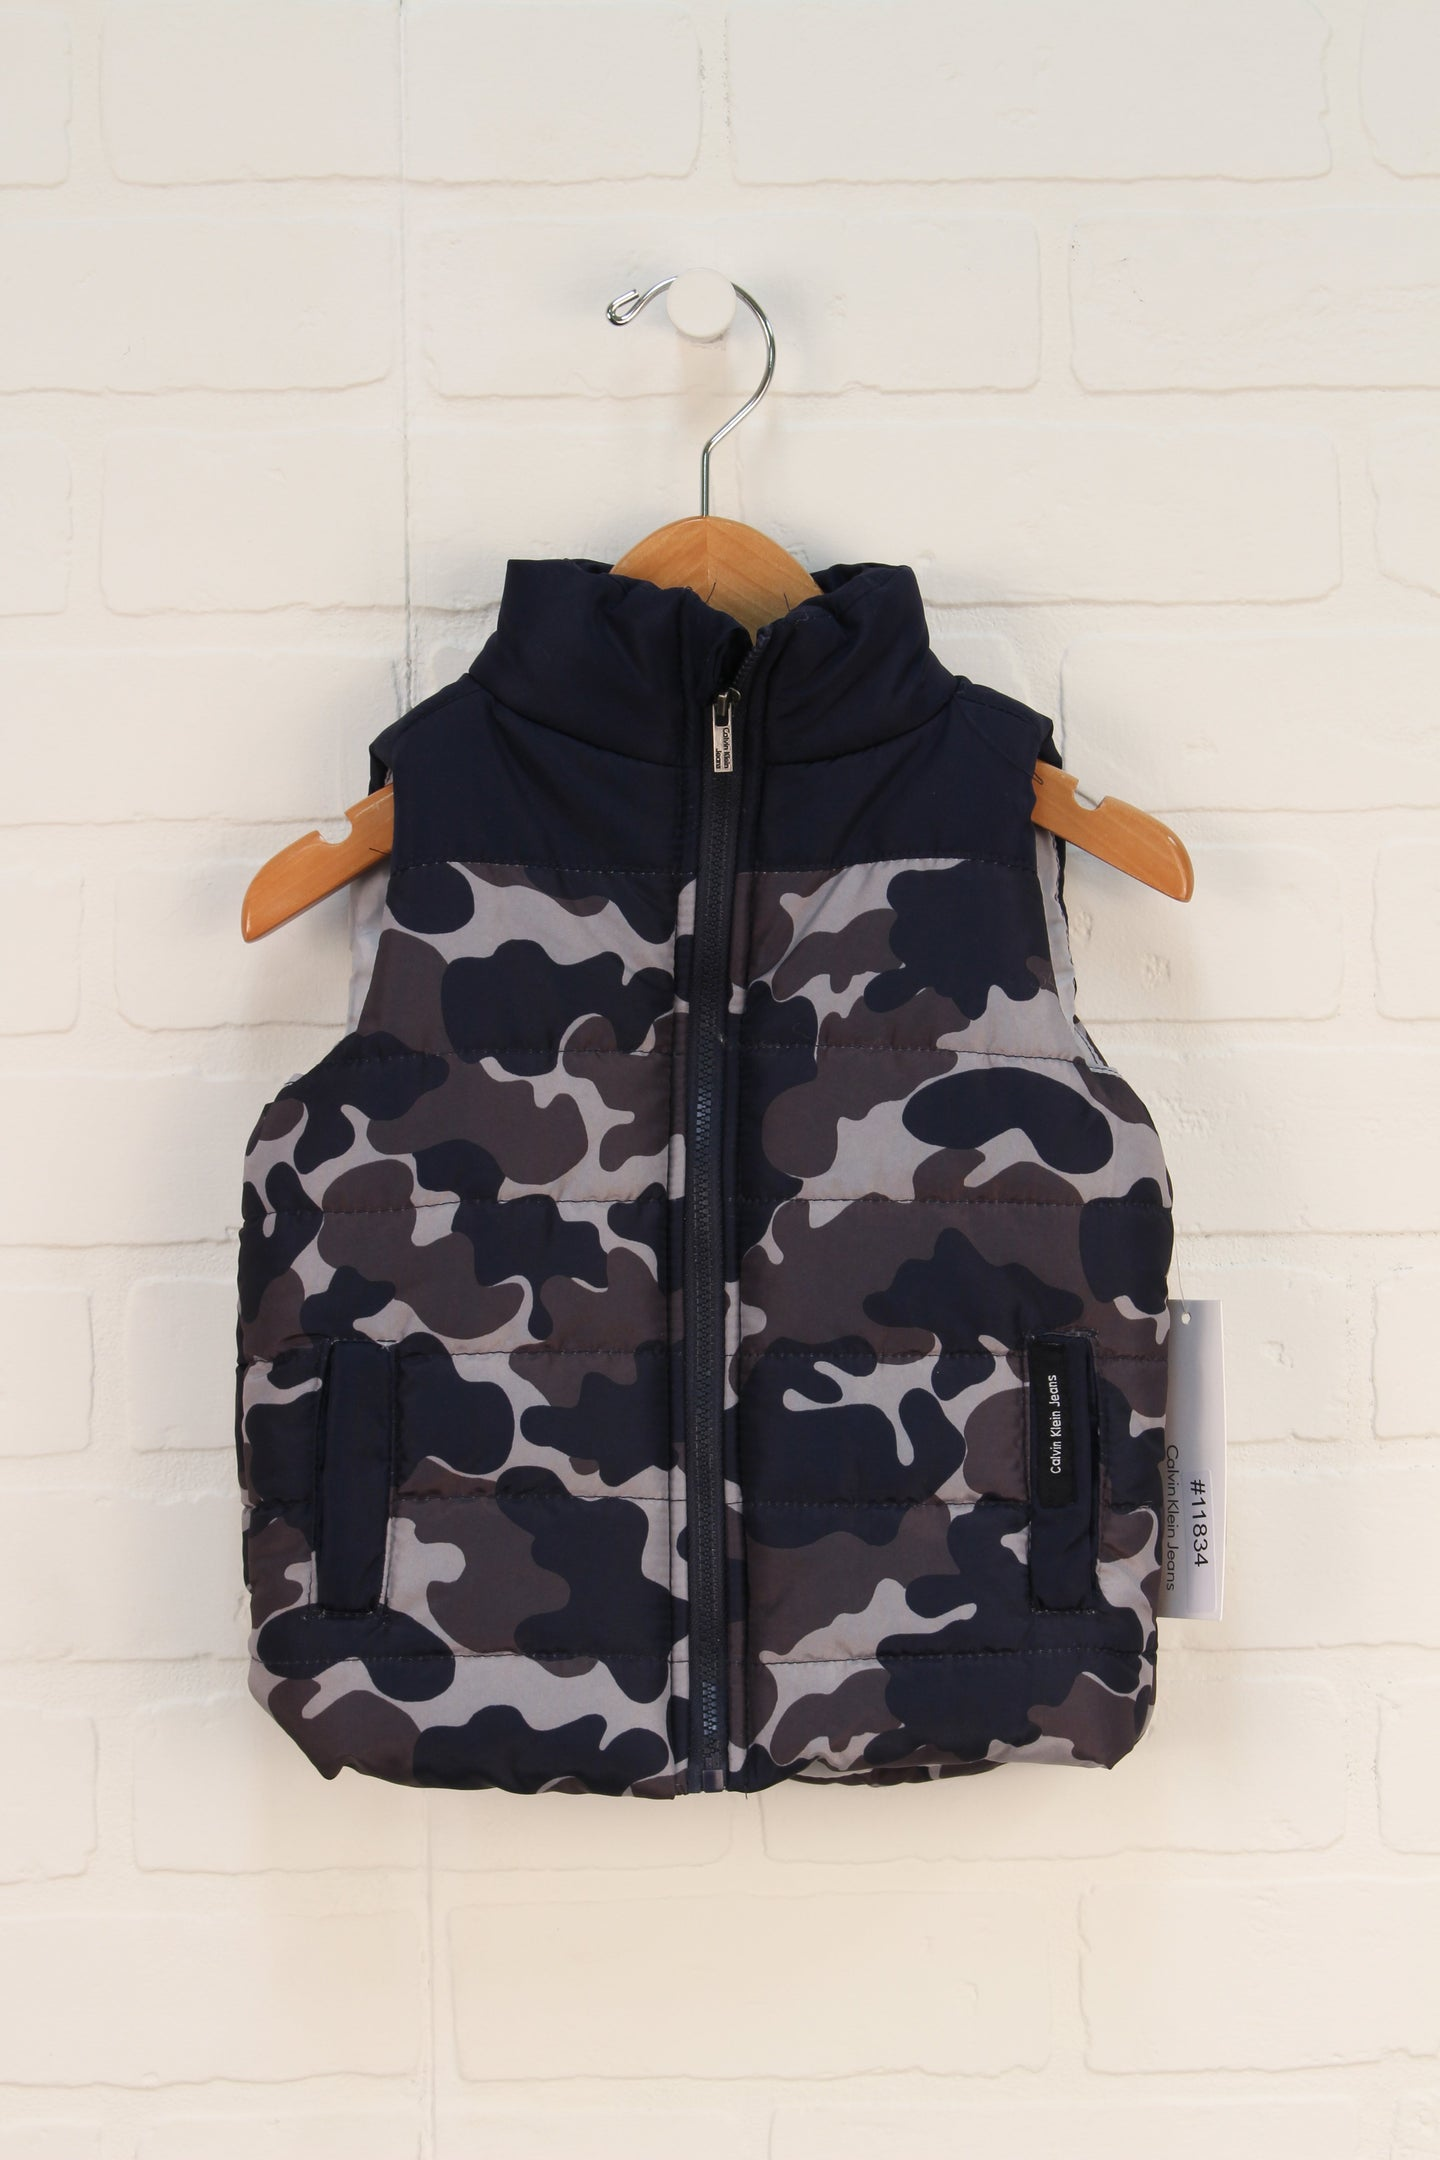 NWT Navy Camo Puffer Vest (Size 18M)